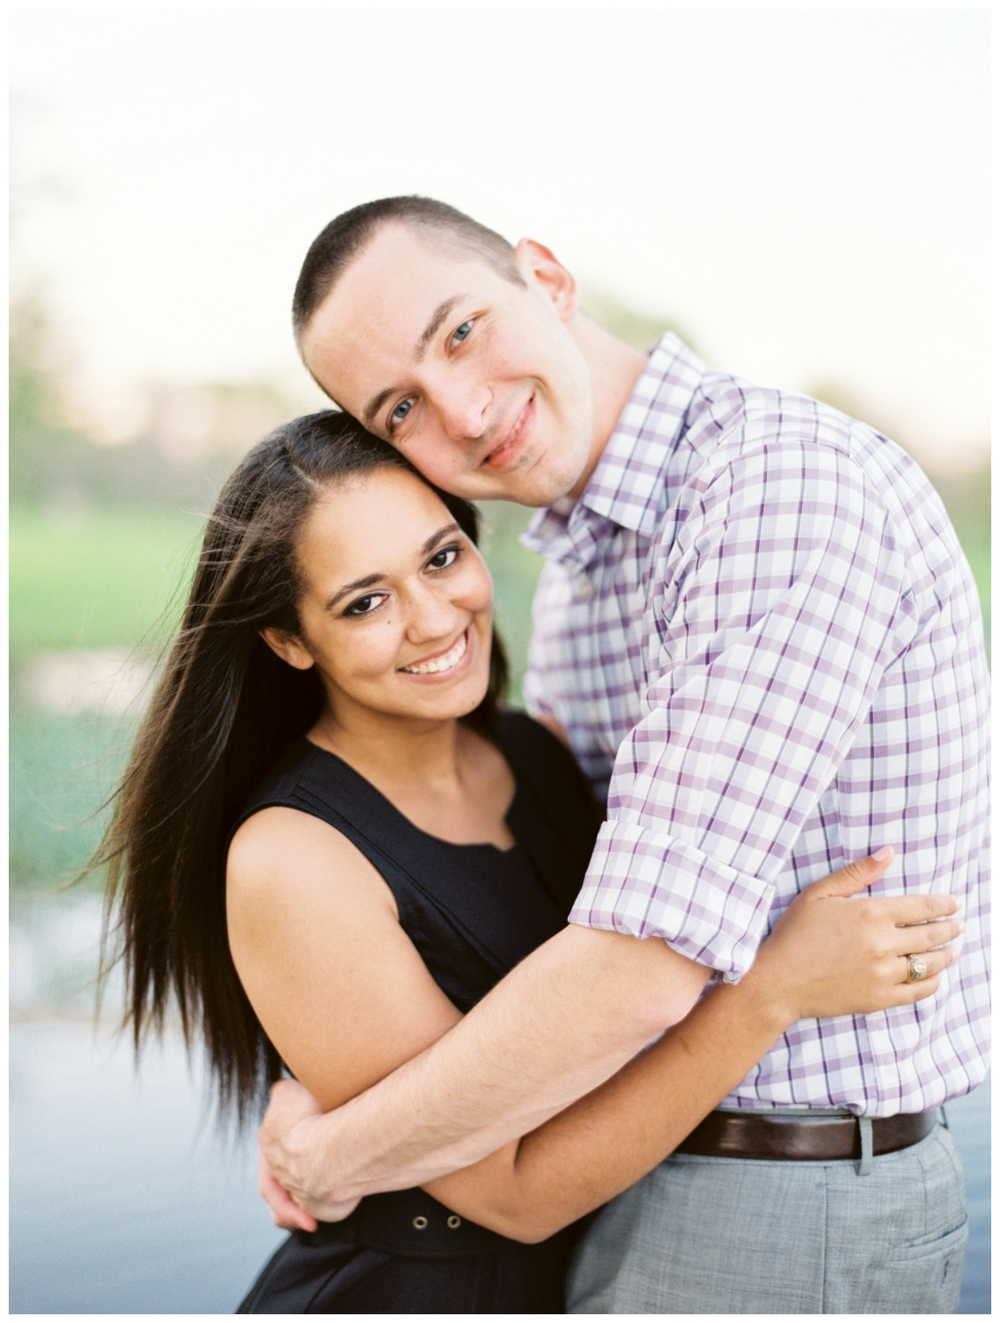 Nyssa & JD Engagements - Rock Lake Ranch - College Station Tx - Film-38_STP.jpg